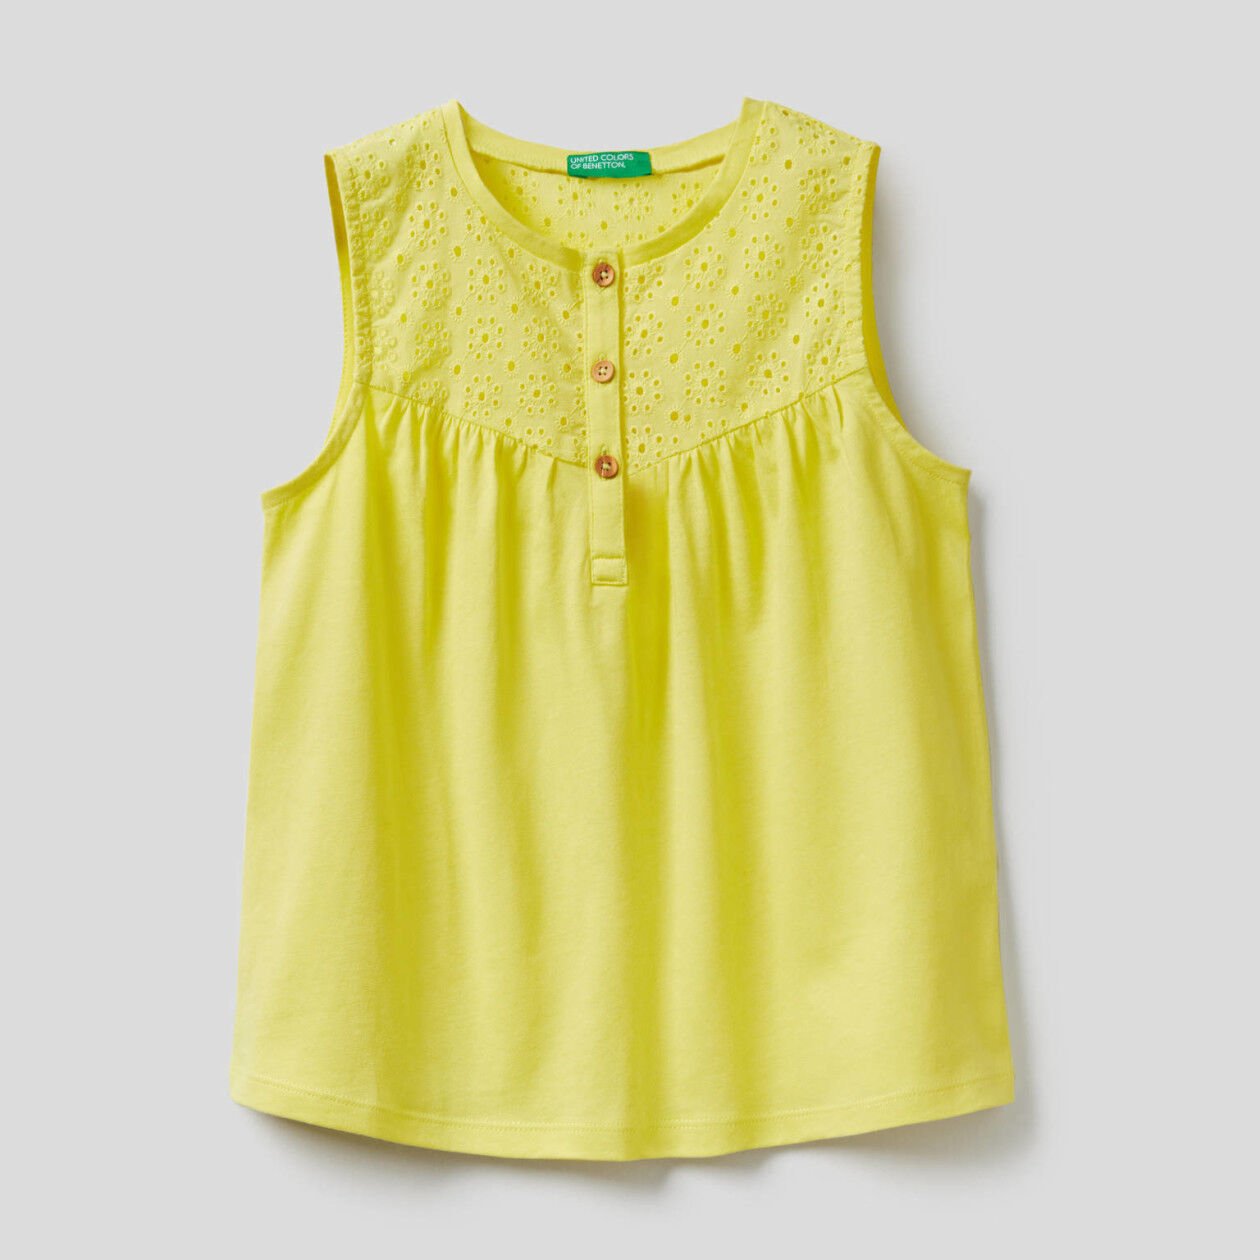 Sleeveless blouse in 100% cotton